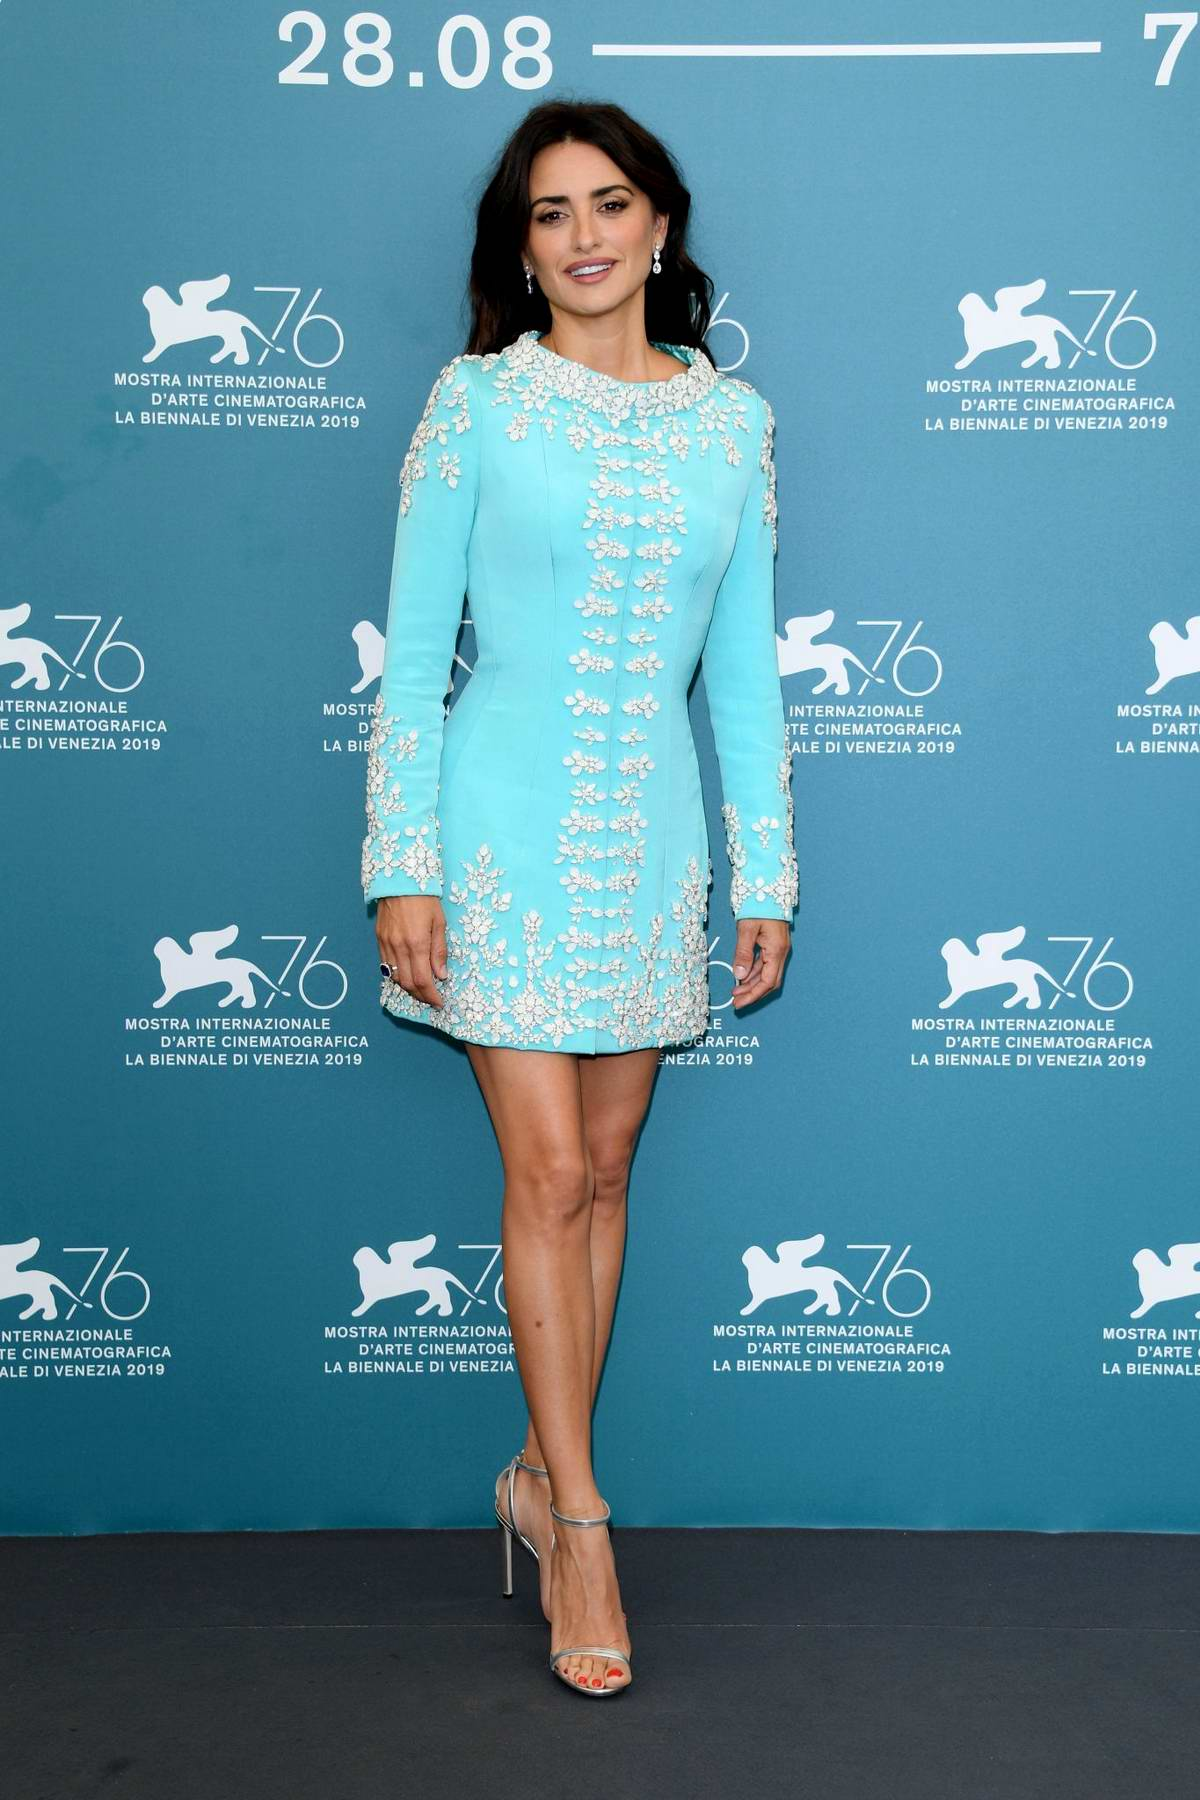 Penelope Cruz attends 'Wasp Network' Photocall during the 76th Venice Film Festival at Sala Grande in Venice, Italy